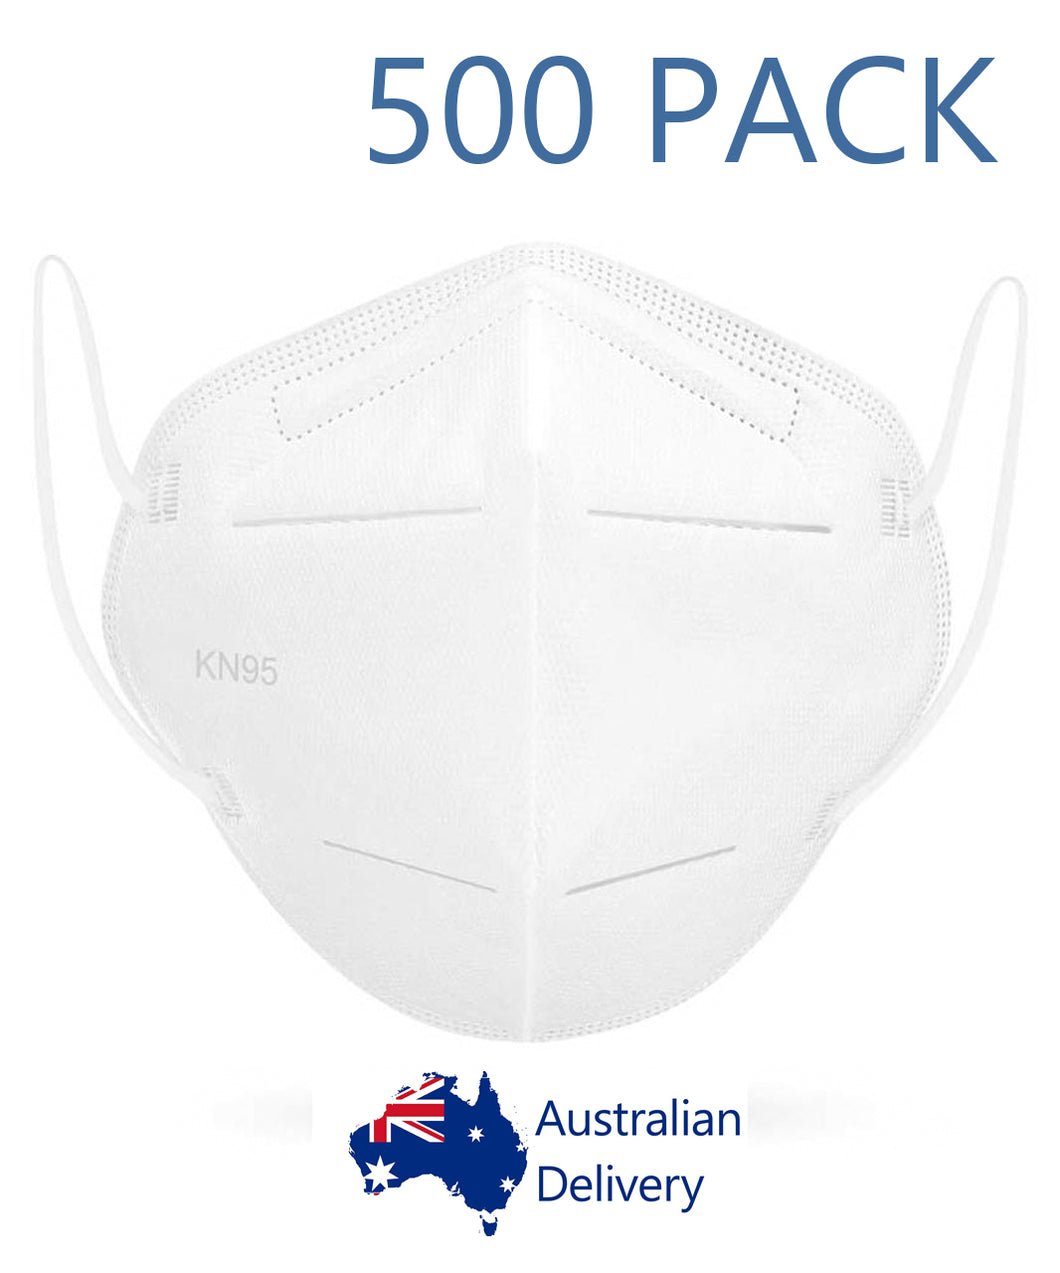 KN95 Masks (500 pack)                IN STOCK - BUY NOW